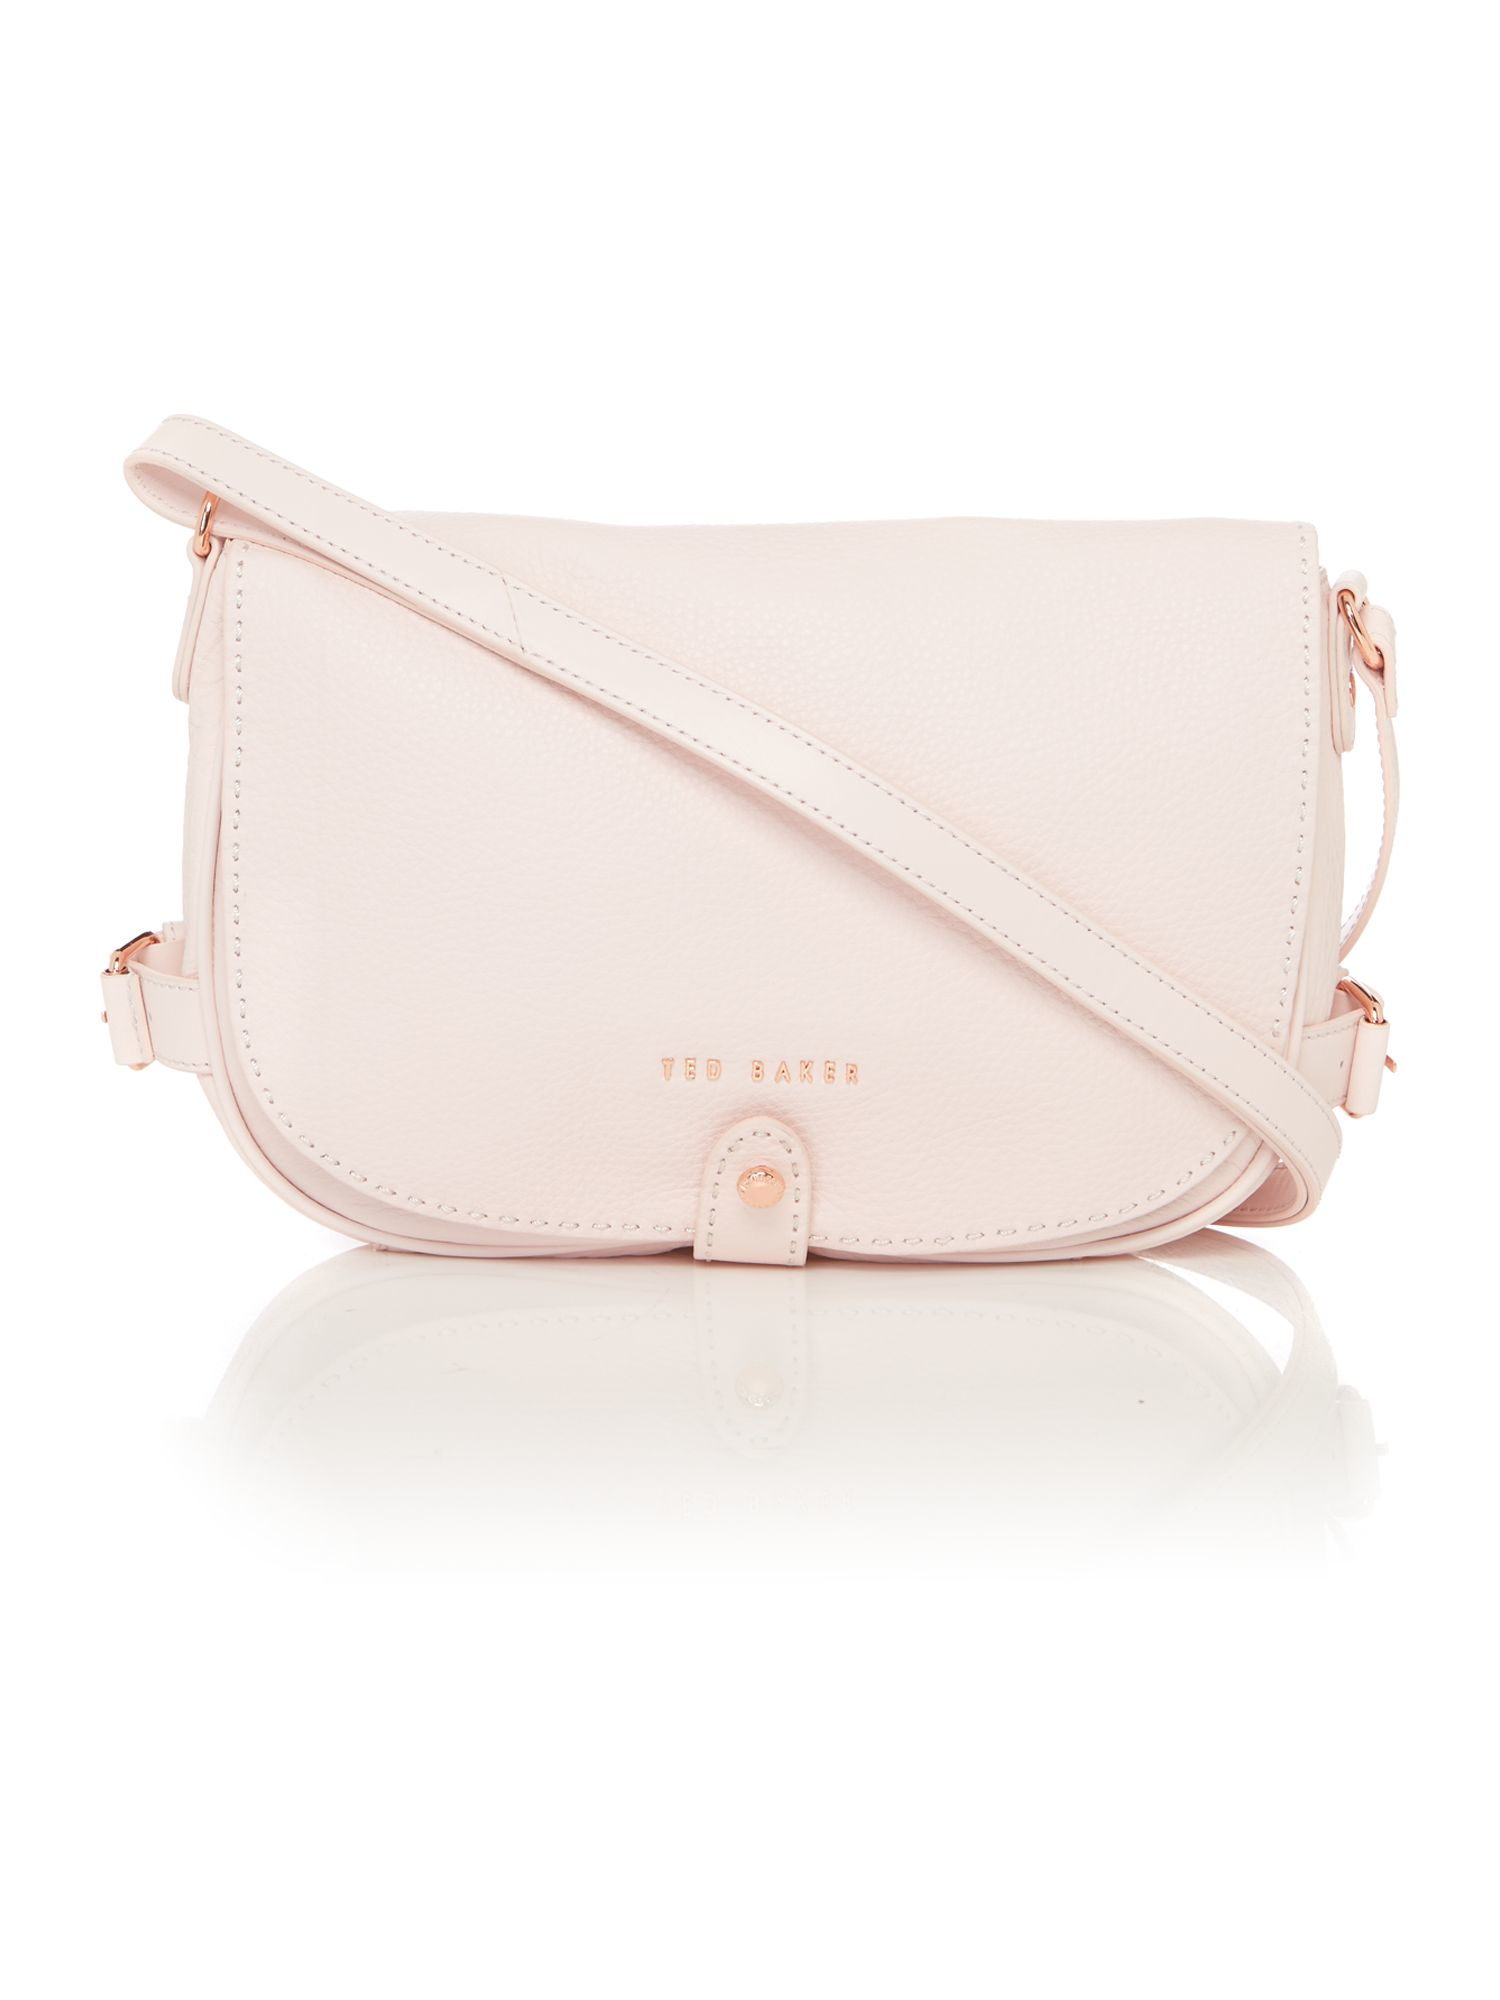 4a7bdcdbb2c Ted baker Regan Light Pink Leather Shoulder Bag in Pink